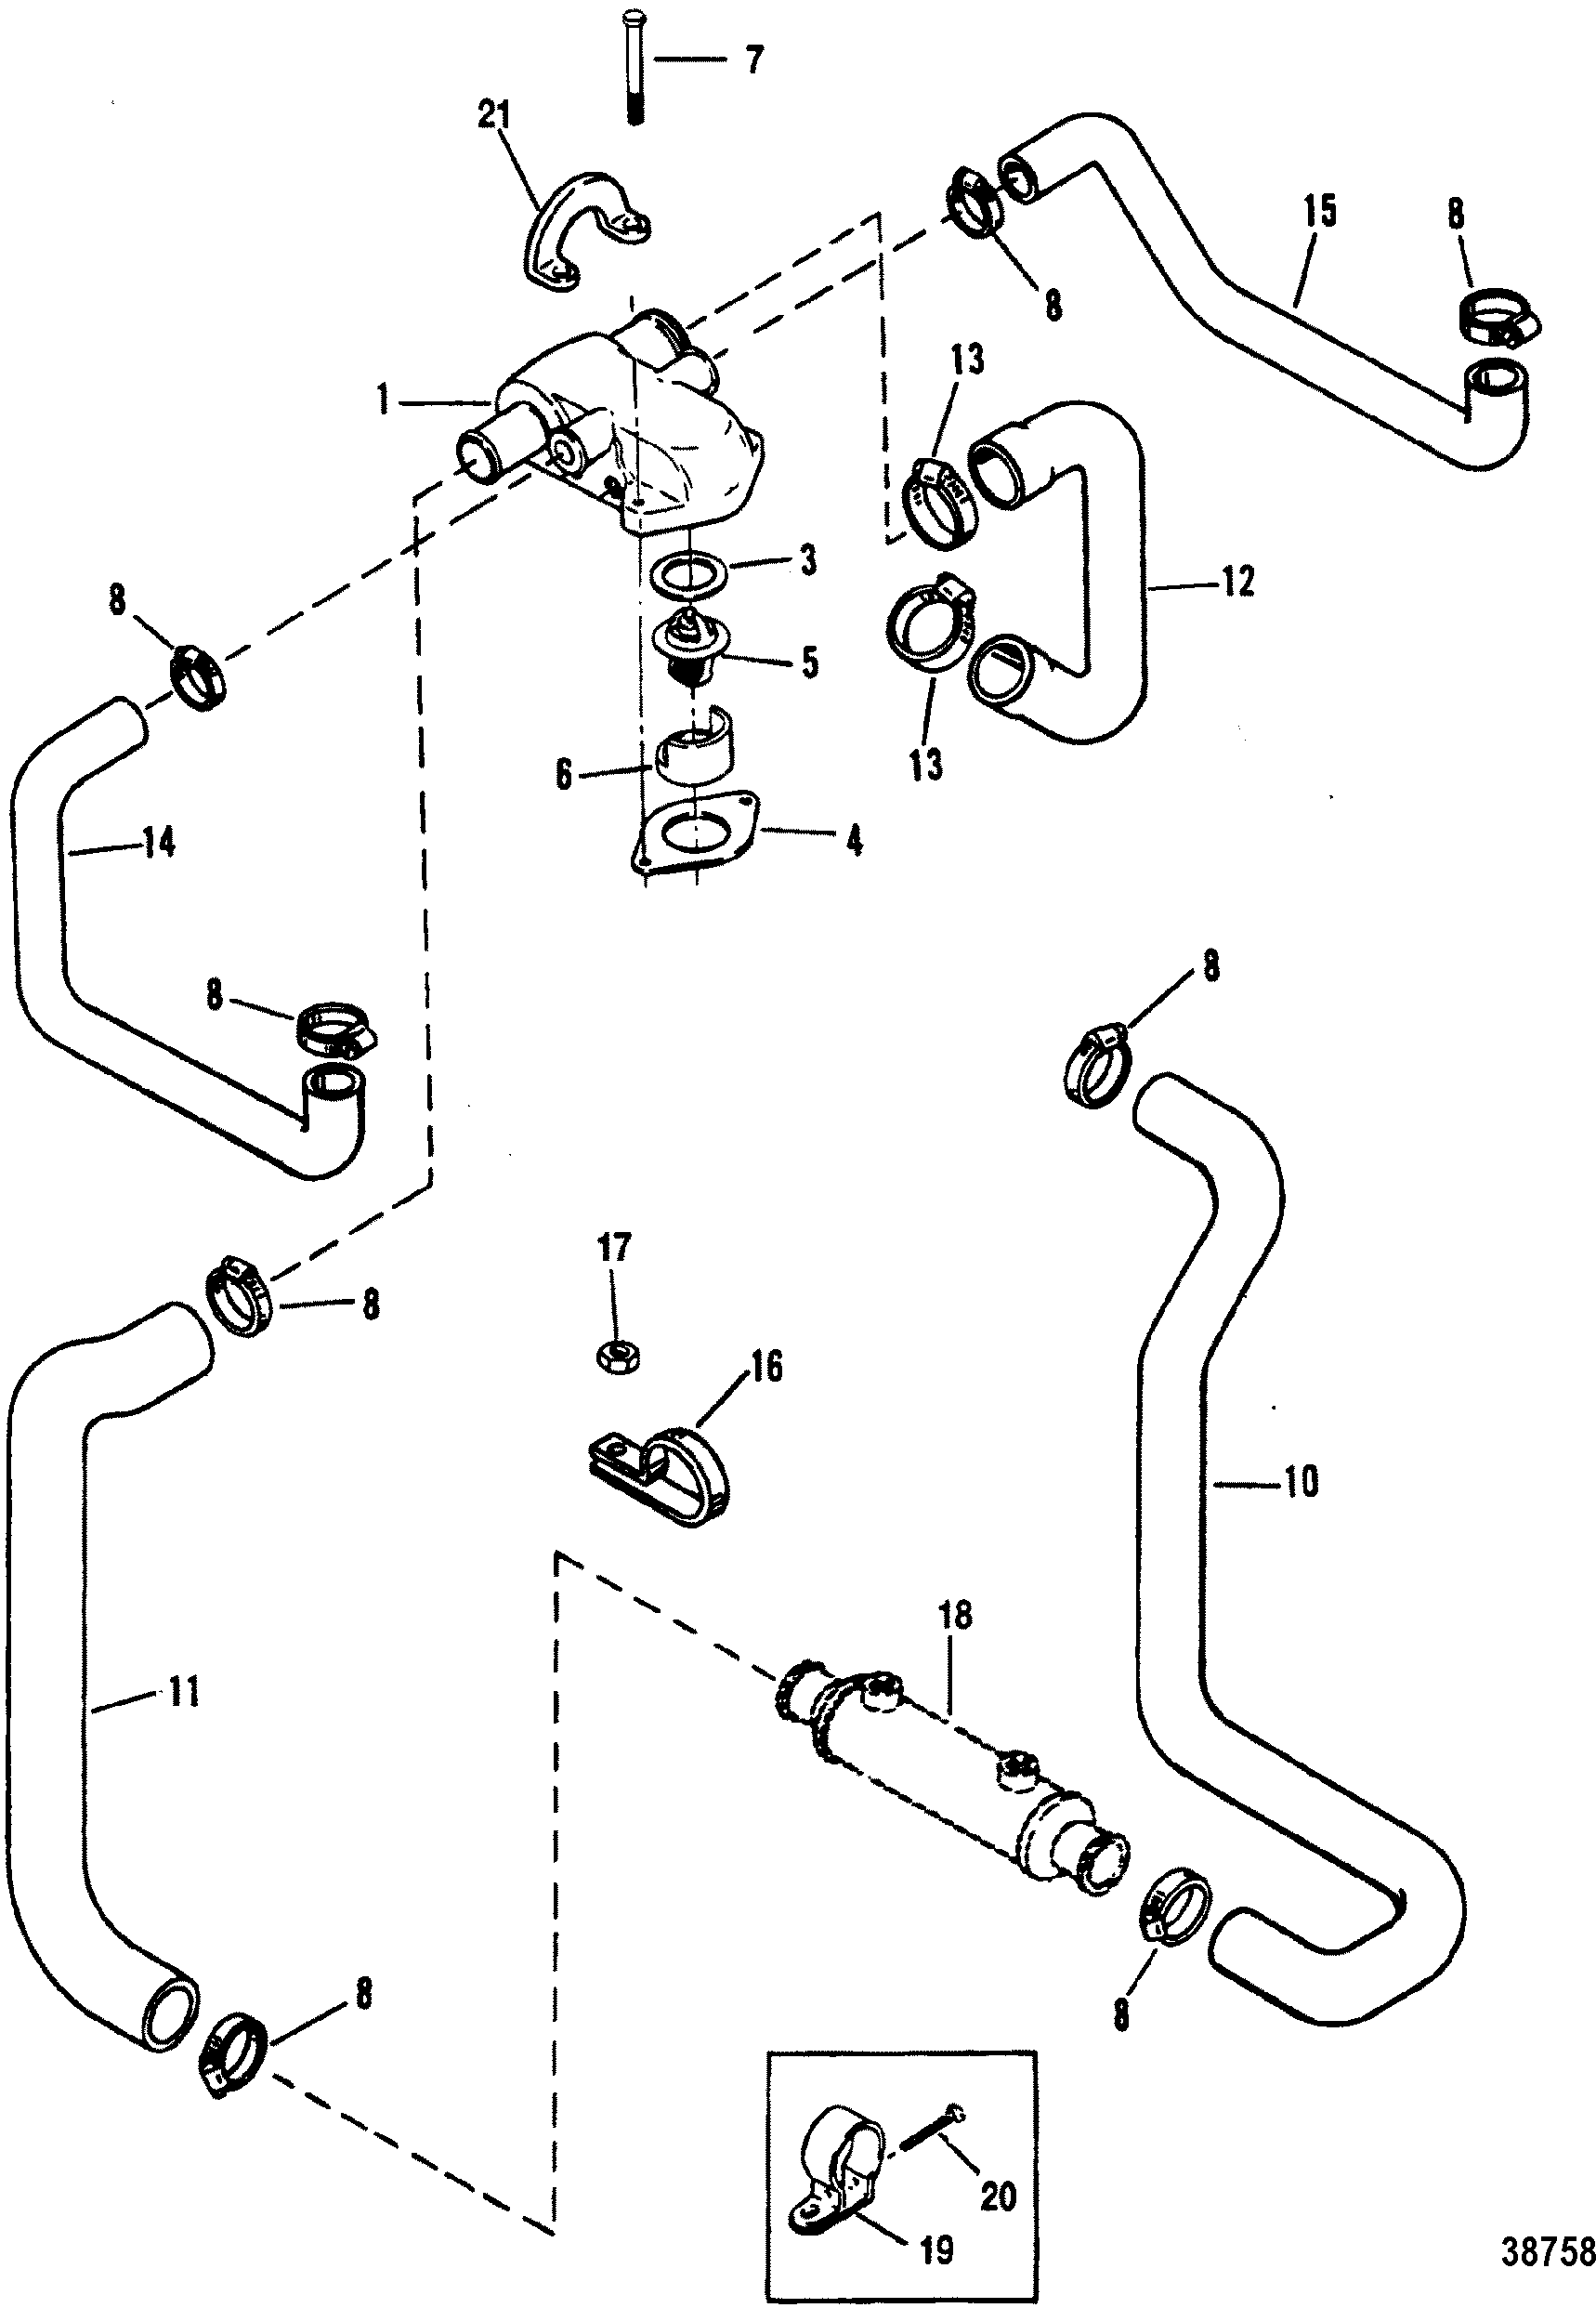 STANDARD COOLING SYSTEM DESIGN II FOR MERCRUISER 4.3L/4